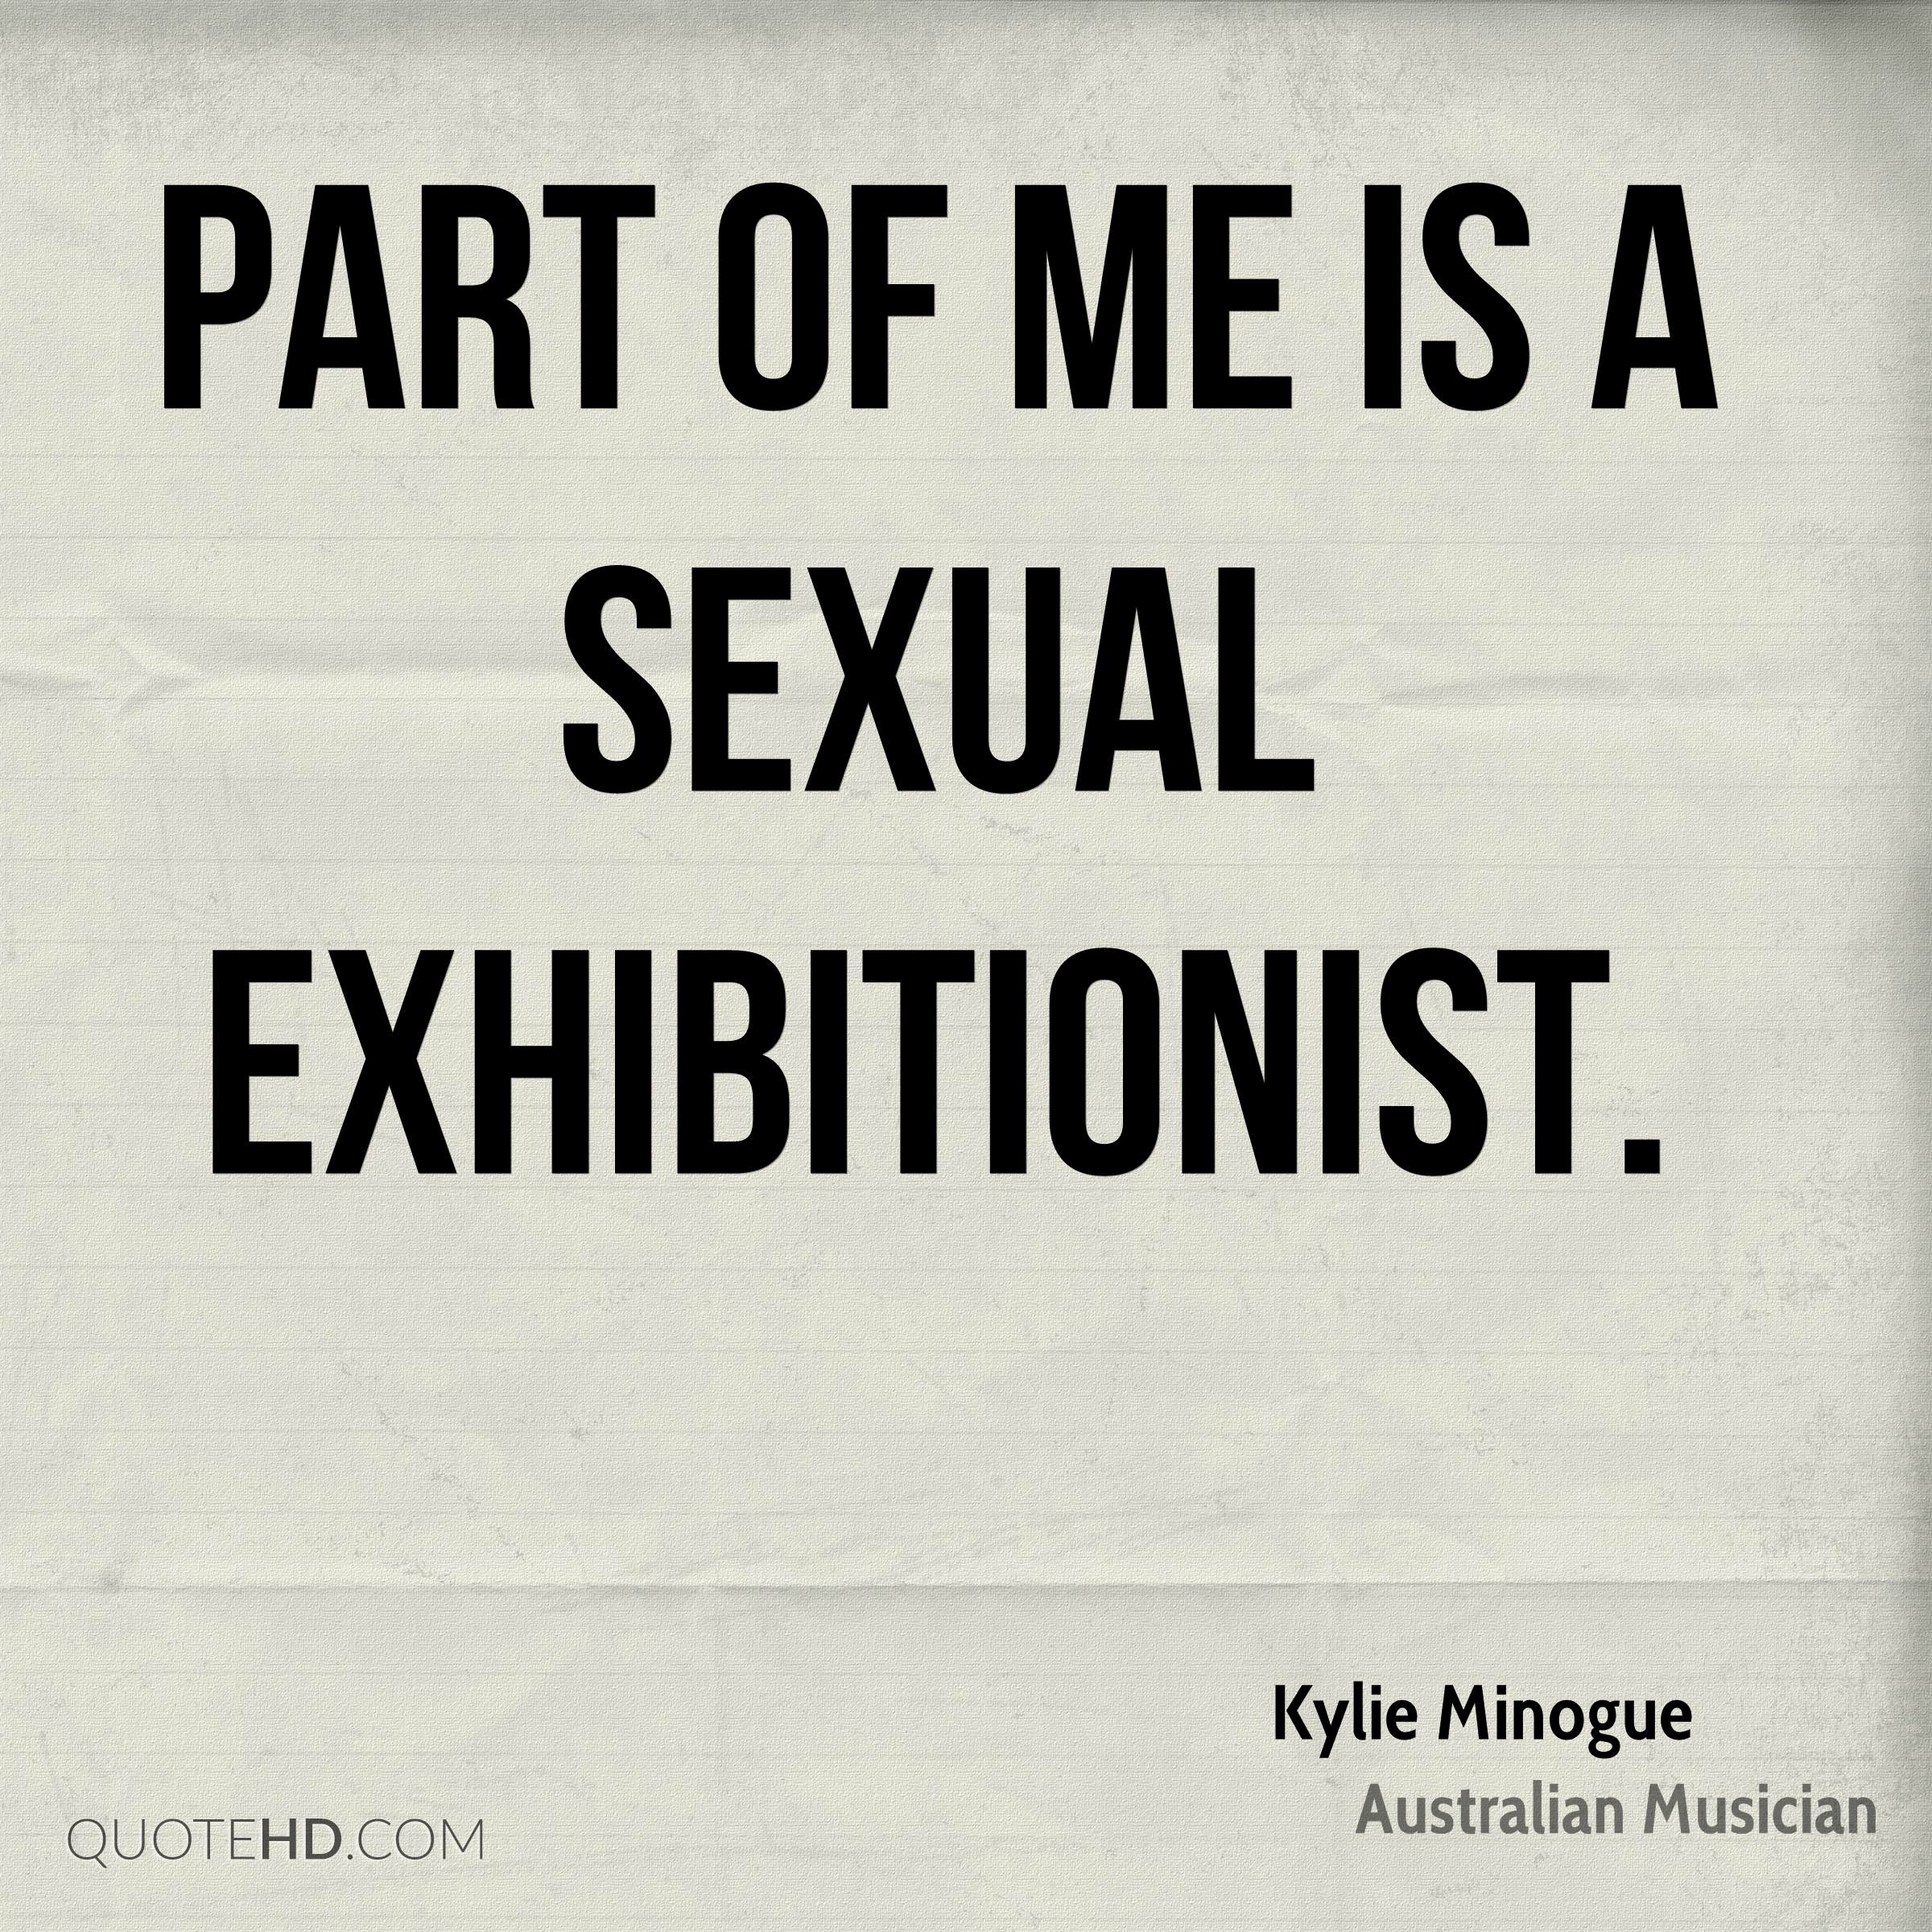 Part of me is a sexual exhibitionist.